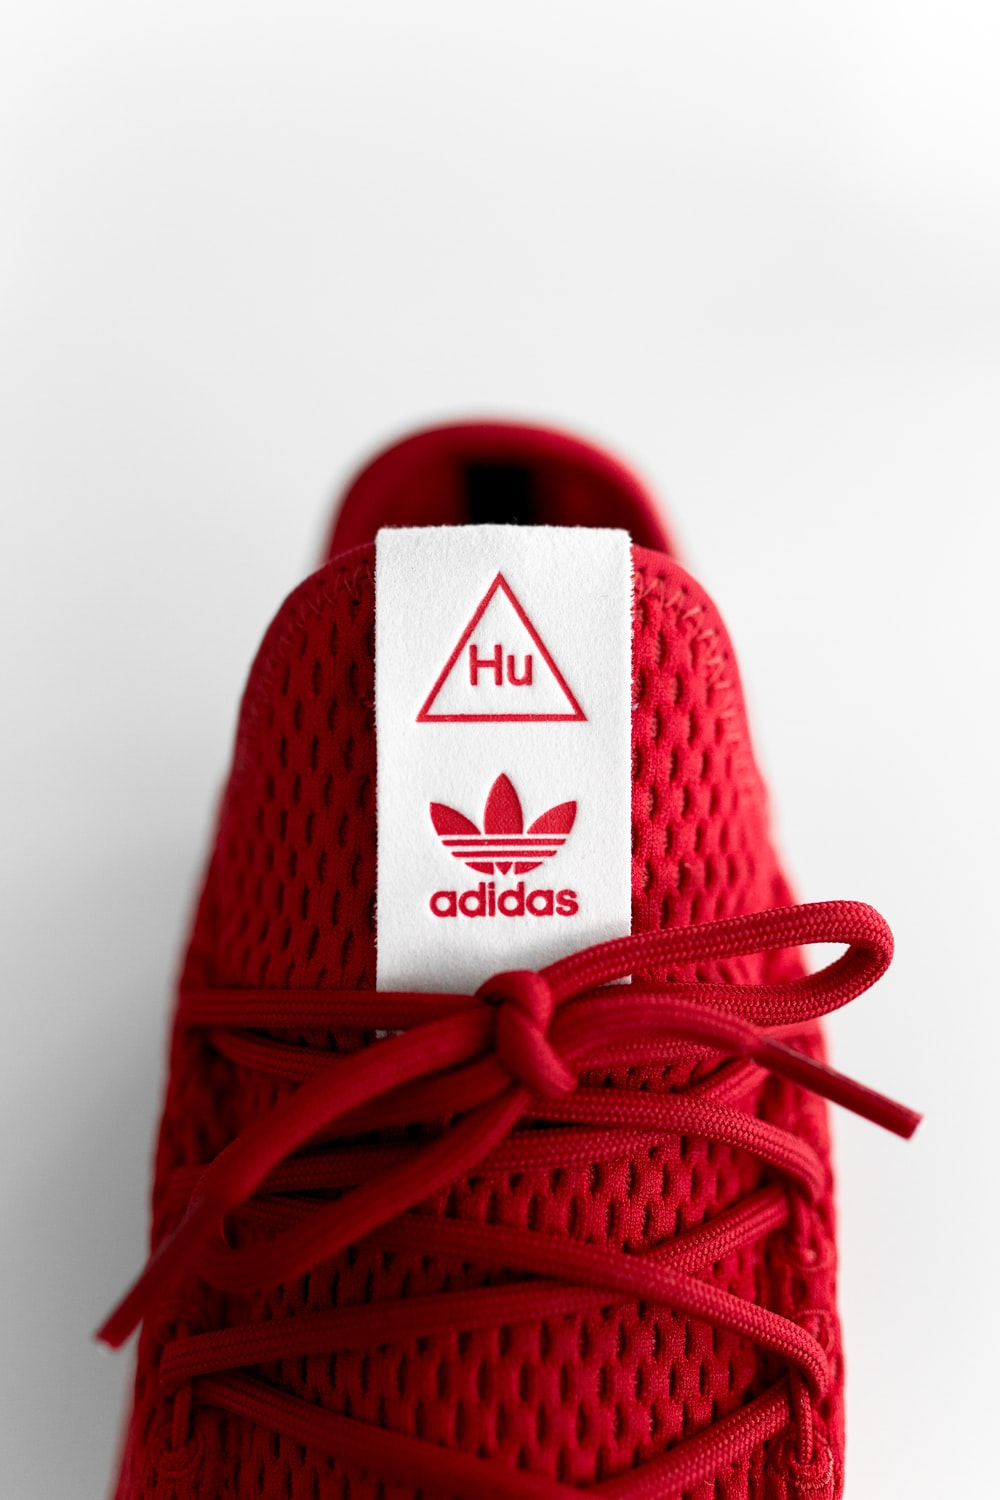 unpaired red adidas sneaker photo – Free Shoe Image on Unsplash